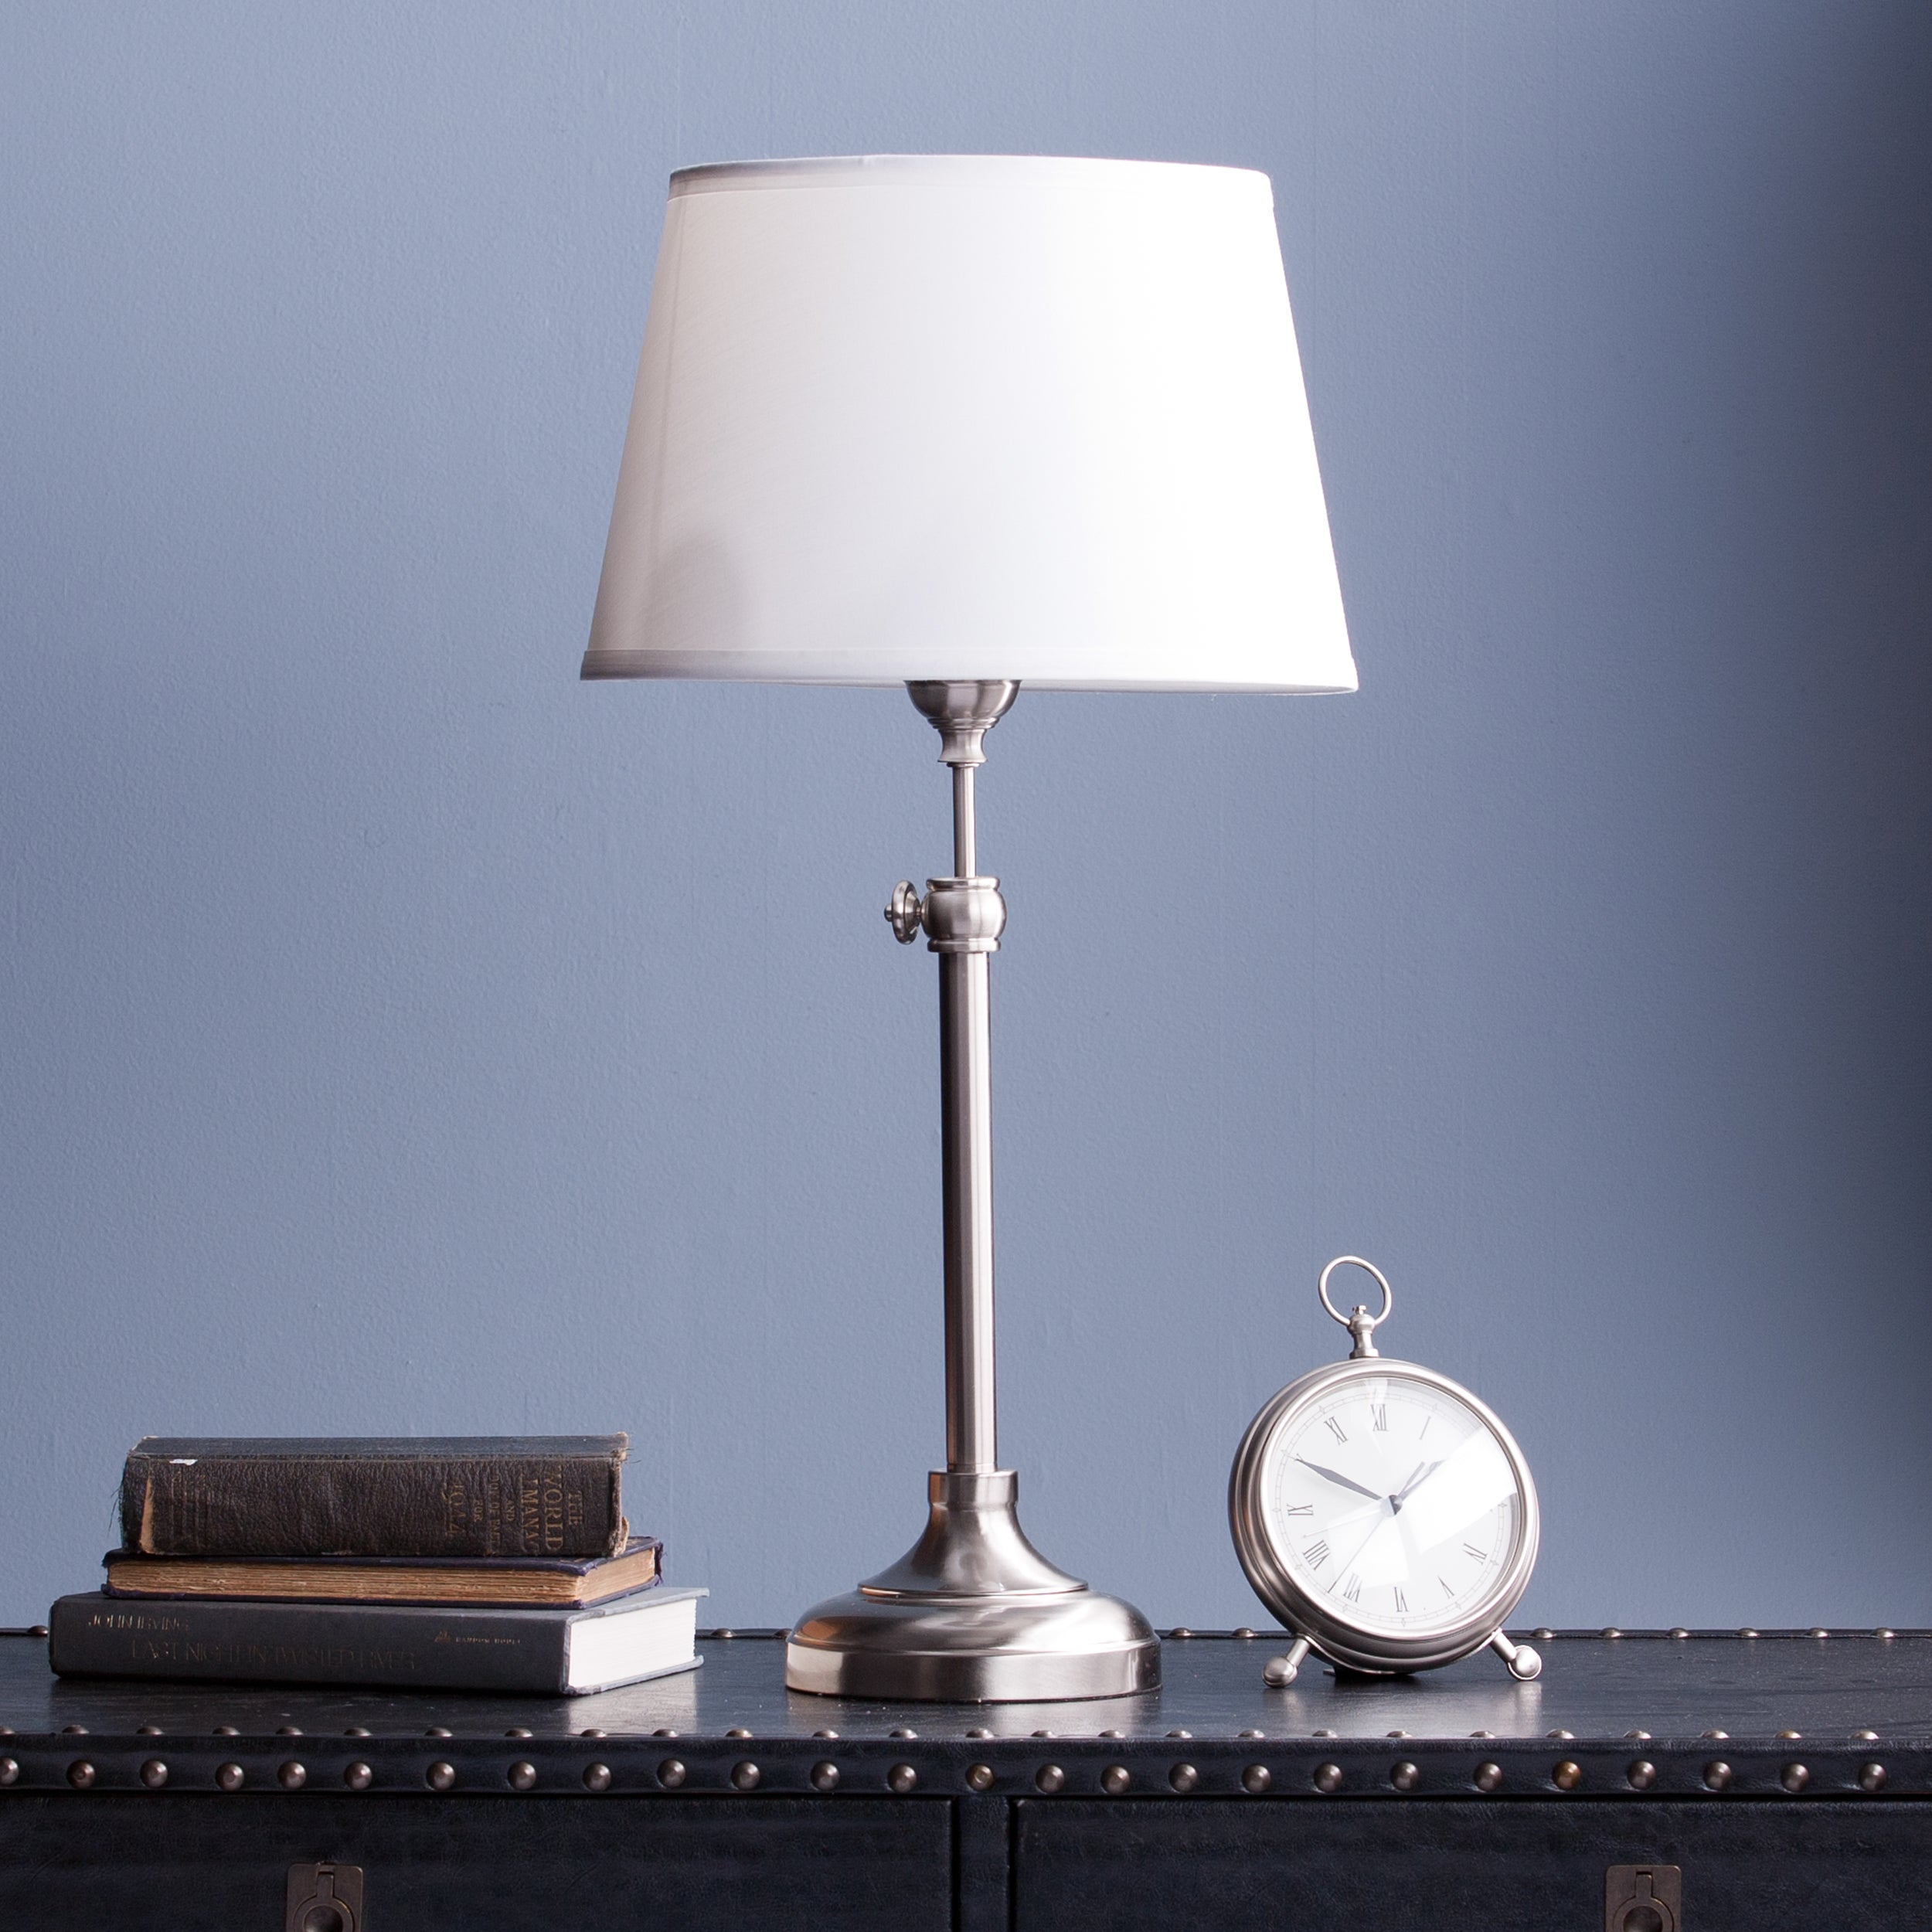 Shop harper blvd dawn table lamp free shipping today overstock shop harper blvd dawn table lamp free shipping today overstock 11658800 aloadofball Image collections